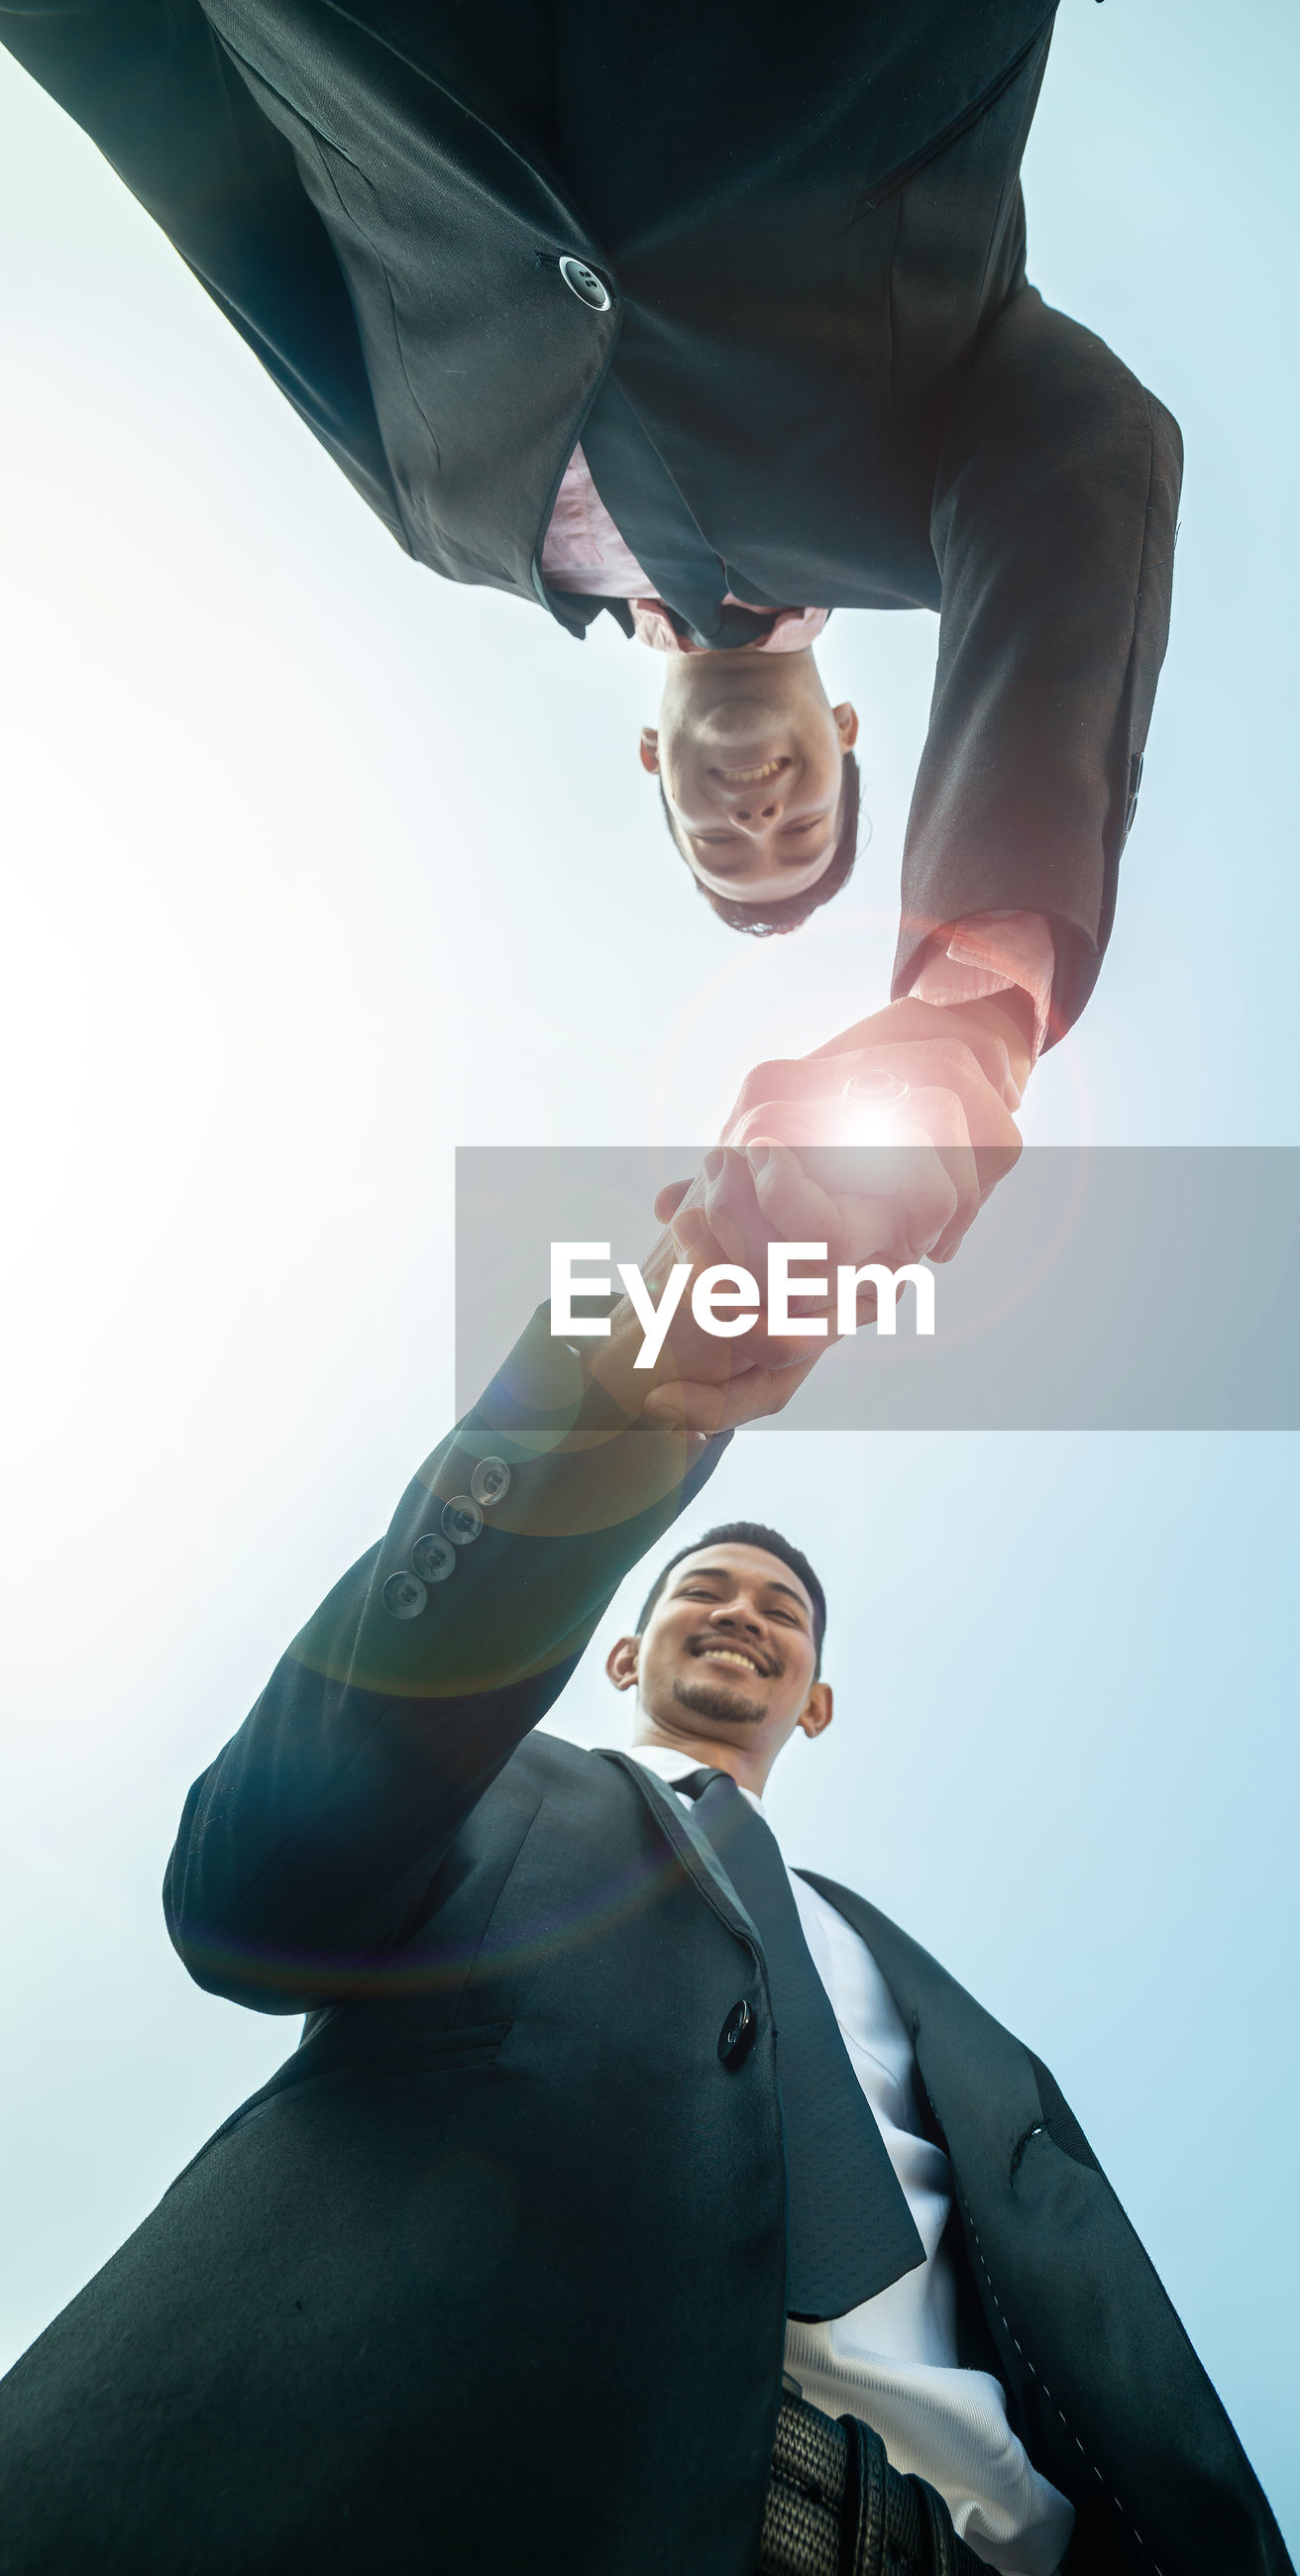 Directly below shot of businessmen shaking hands while standing against sky